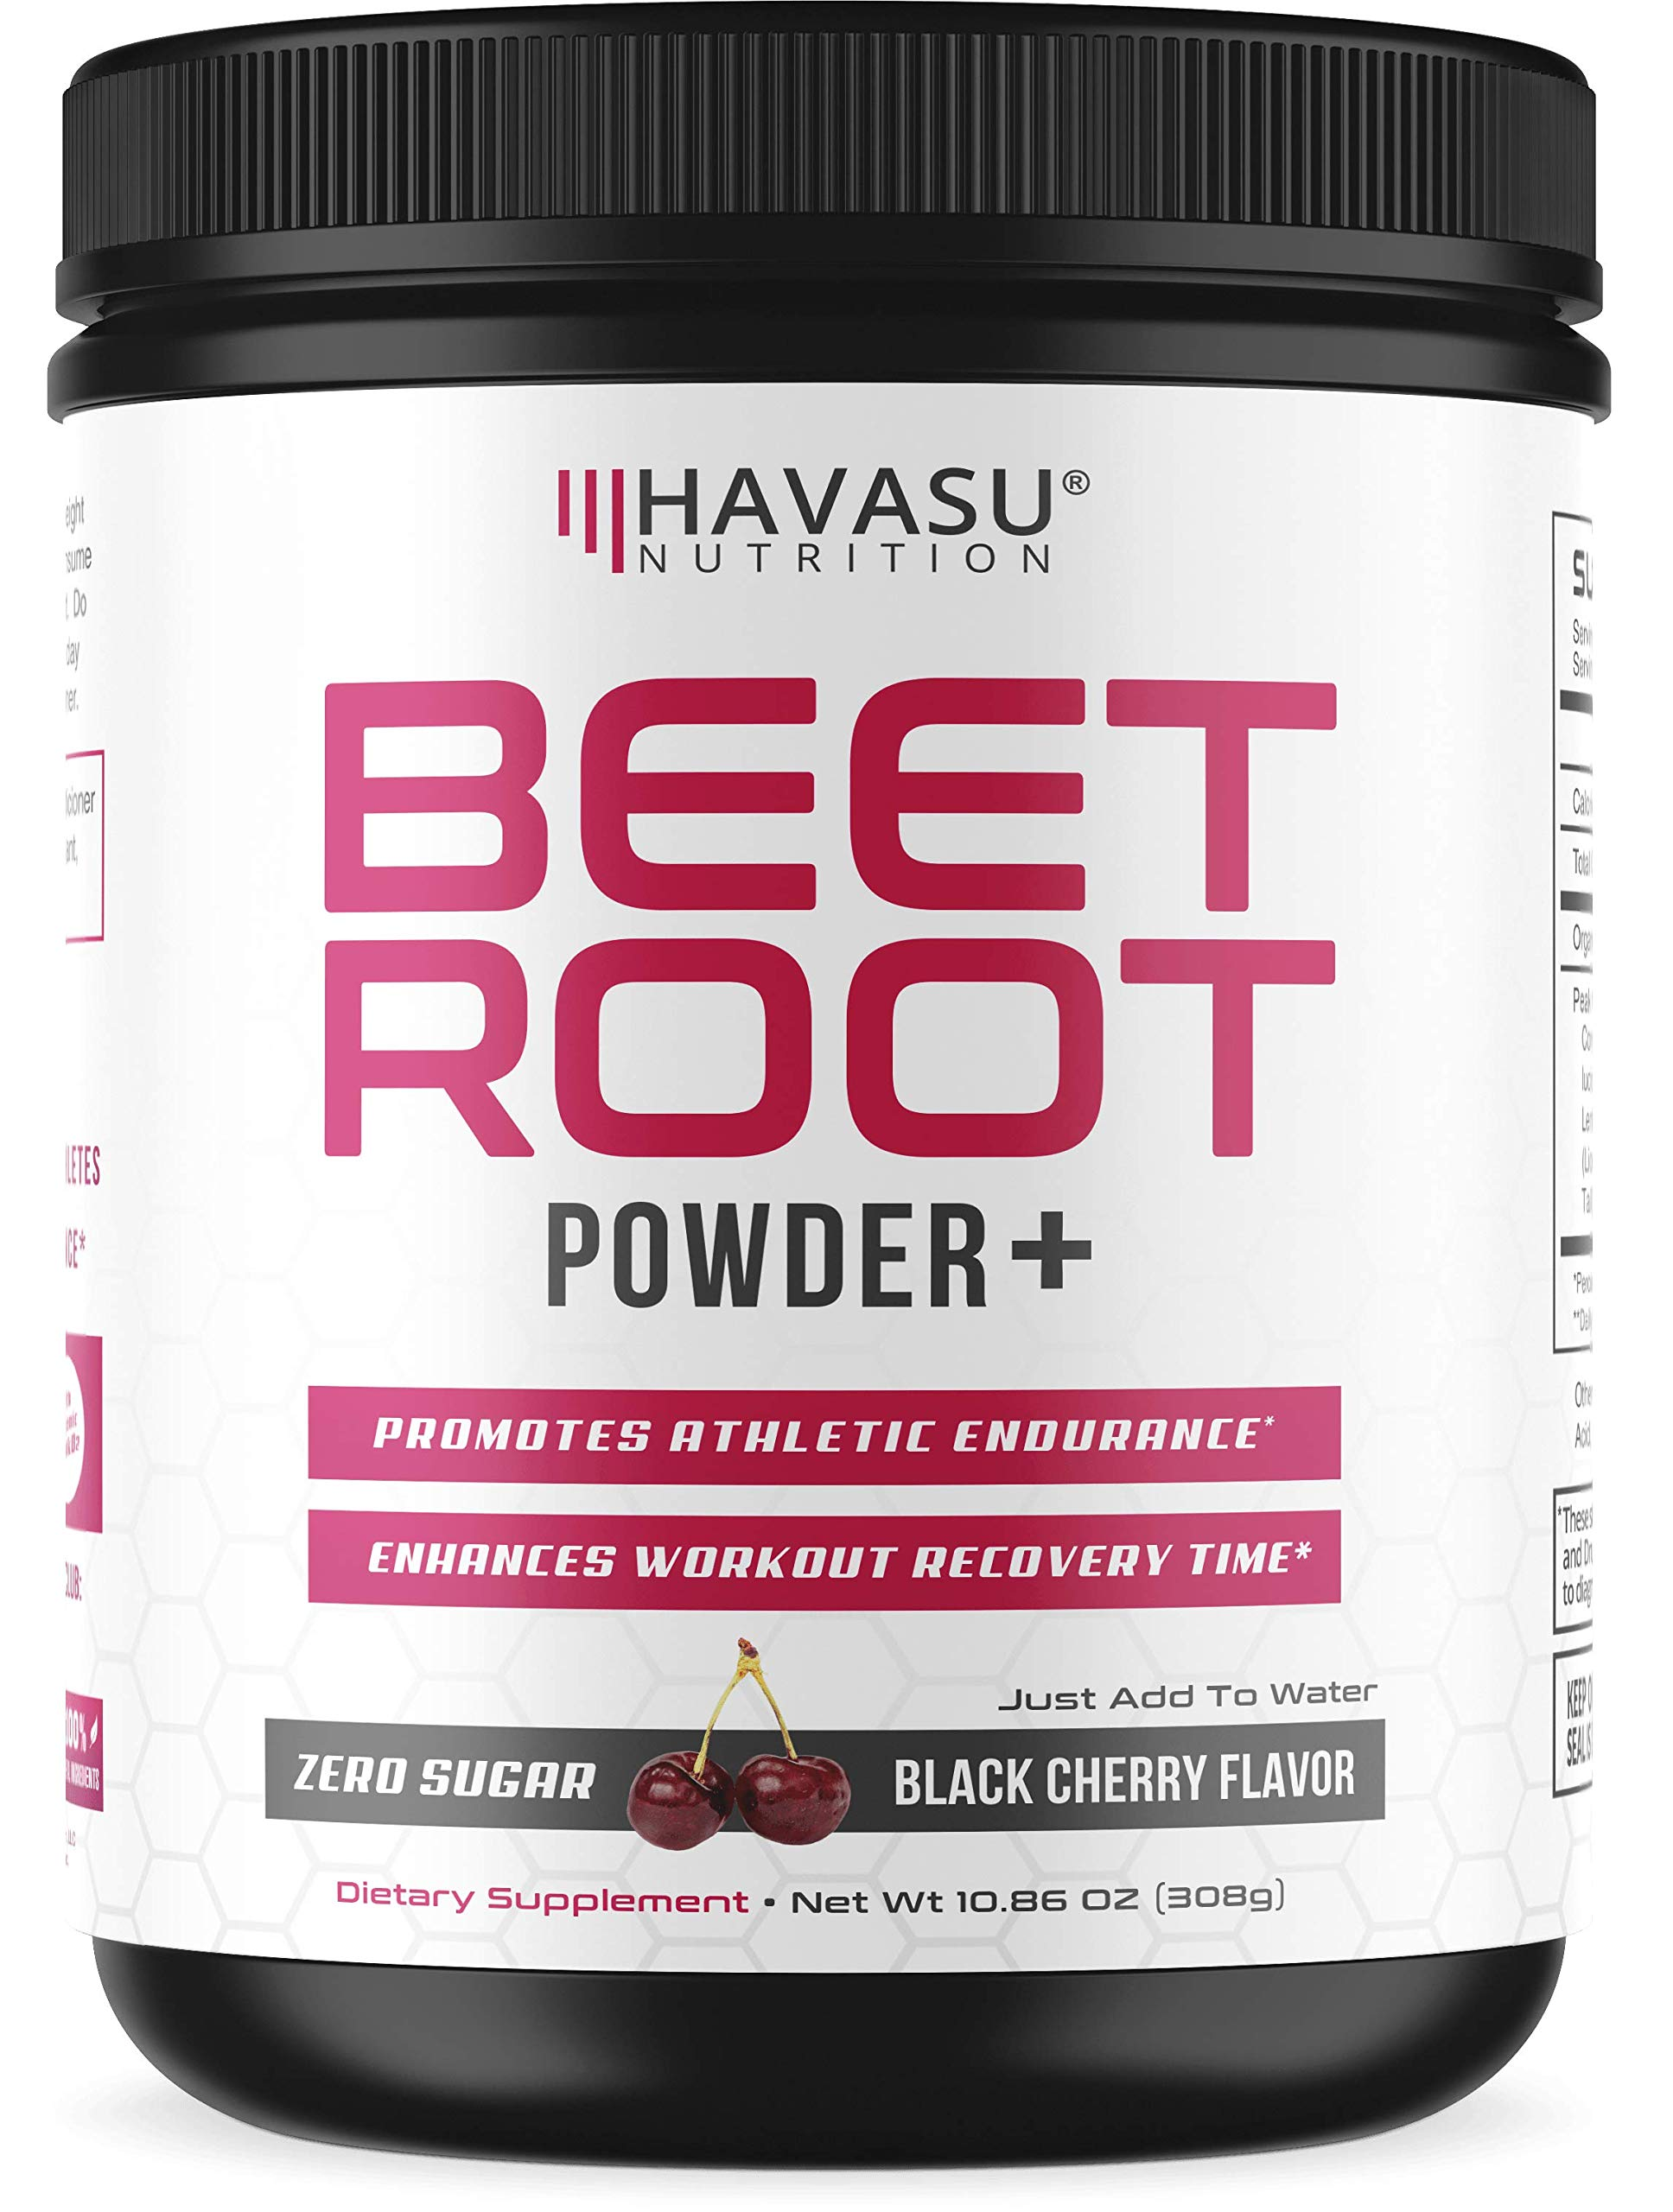 Beet Root Powder with Patented, Organic PeakO2 & Mushroom Blend - Supports Fast Workout Recovery & Promotes Athletic Endurance; No Sugar, Non-GMO by Havasu Nutrition (Image #1)